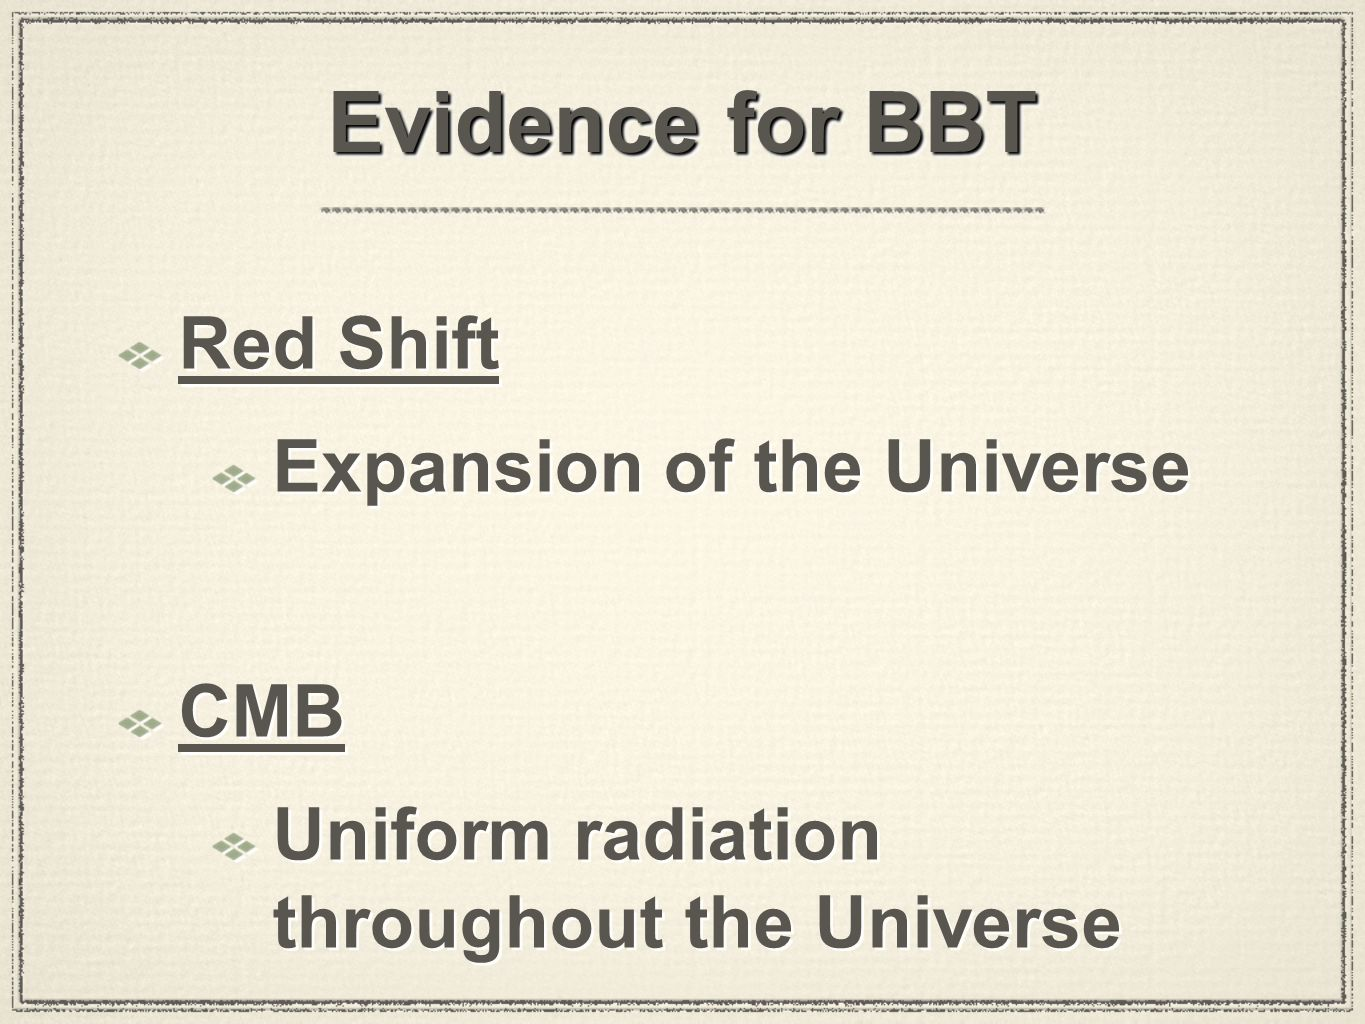 Evidence for BBT Red Shift Expansion of the Universe CMB Uniform radiation throughout the Universe Red Shift Expansion of the Universe CMB Uniform rad